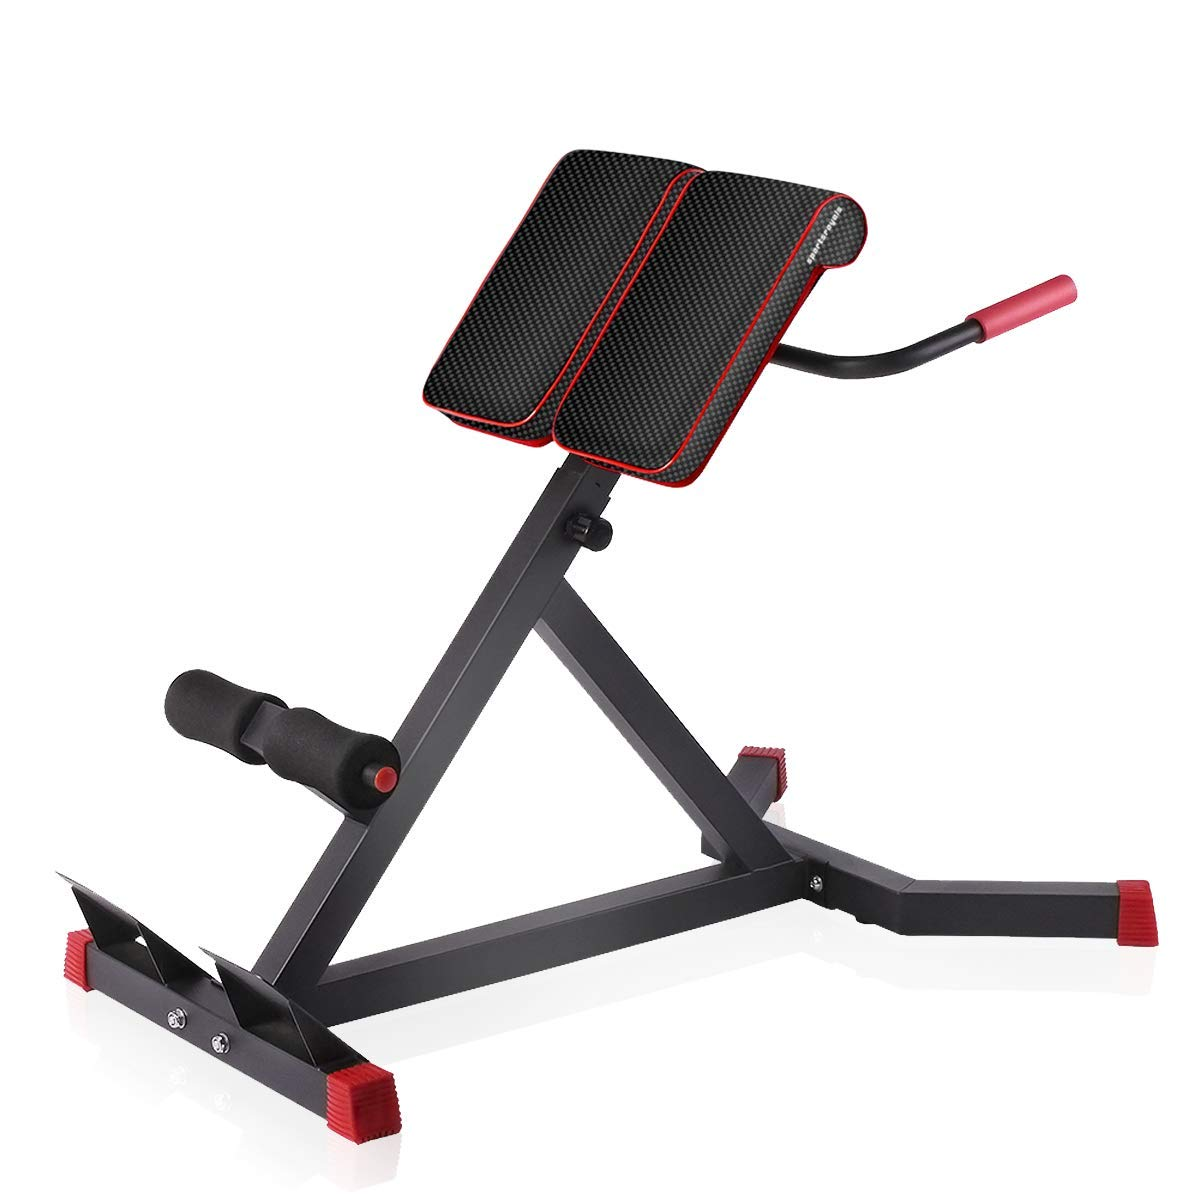 Pleasant Sportsroyals Adjustable Roman Chair Back Hyperextension Bench For Strengthening Abs And Lower Back Ibusinesslaw Wood Chair Design Ideas Ibusinesslaworg